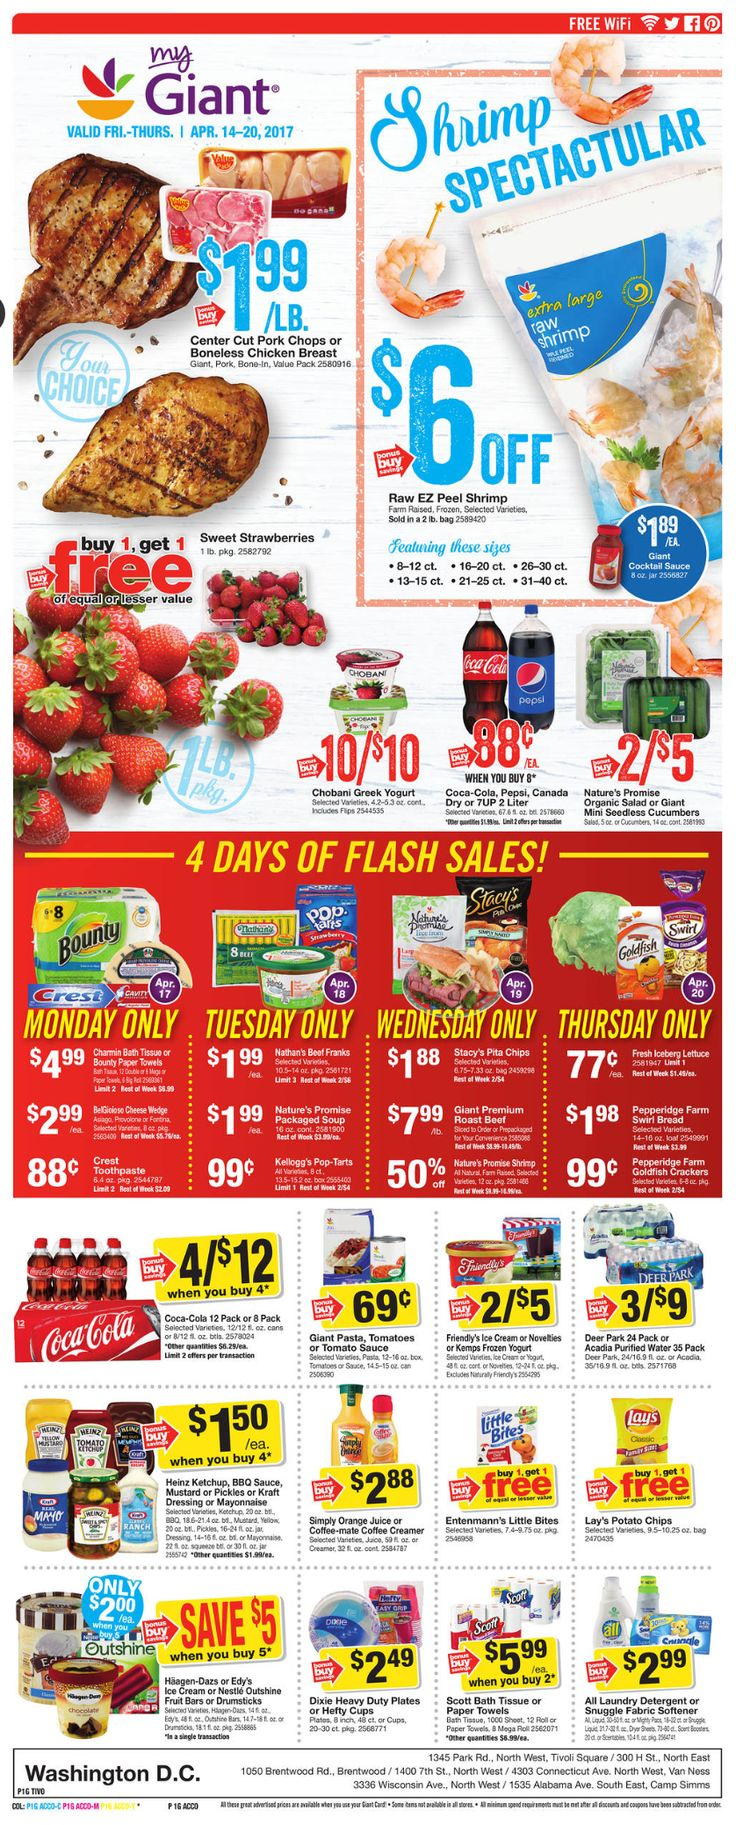 Giant Food Weekly Ad April 14 - 20, 2017 - http://www.olcatalog.com/grocery/giant-food-weekly-ad.html